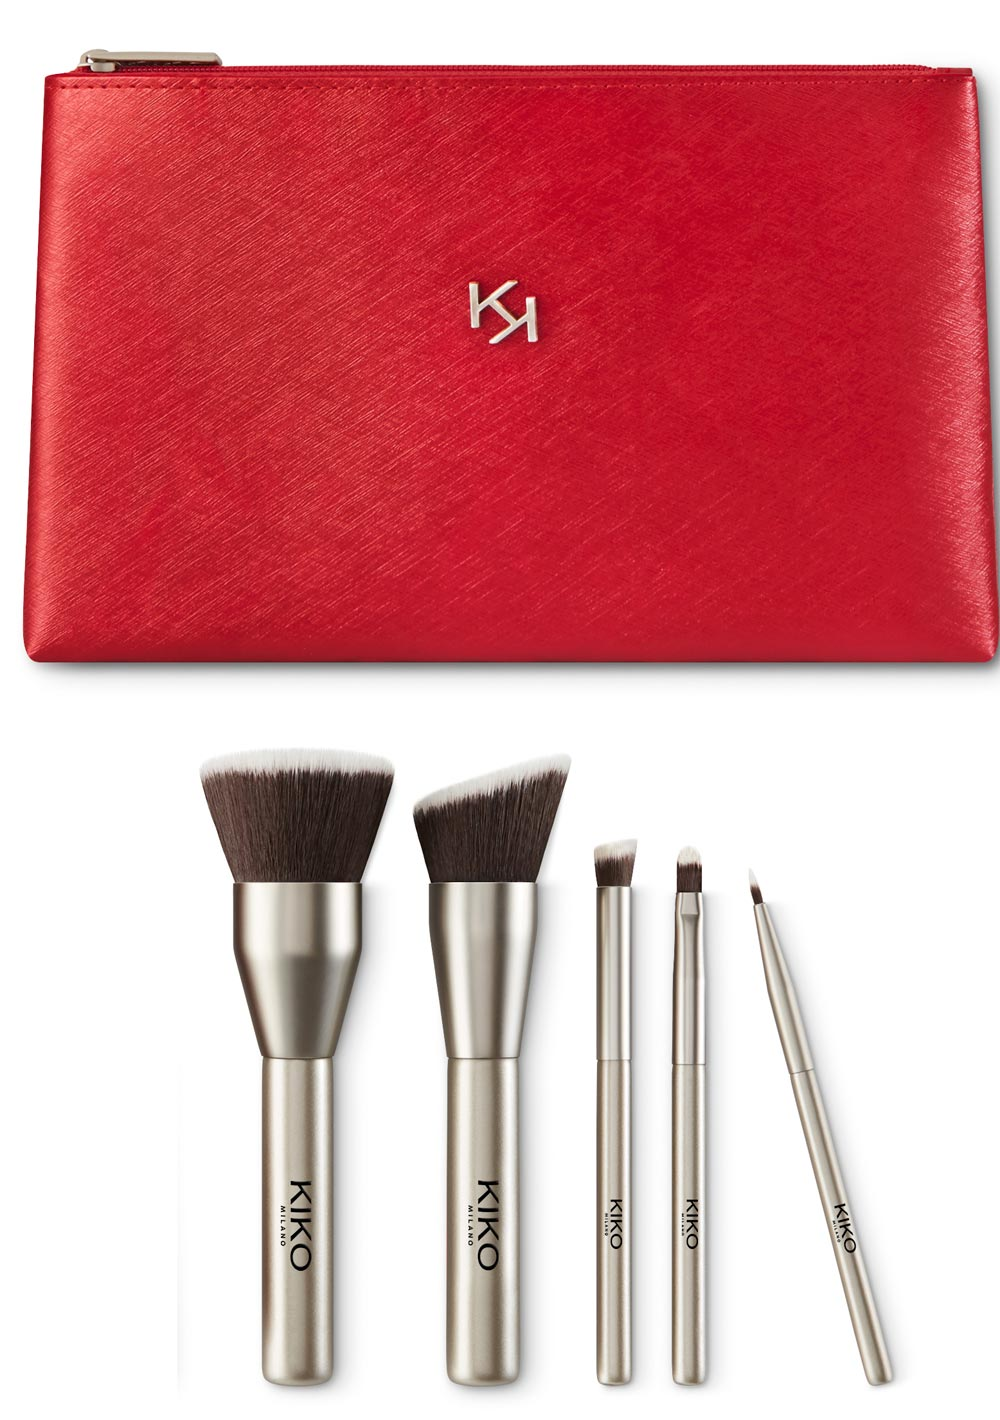 kiko-holiday-collection-natale-2016-professional-brush-kit-pennelli-pochette